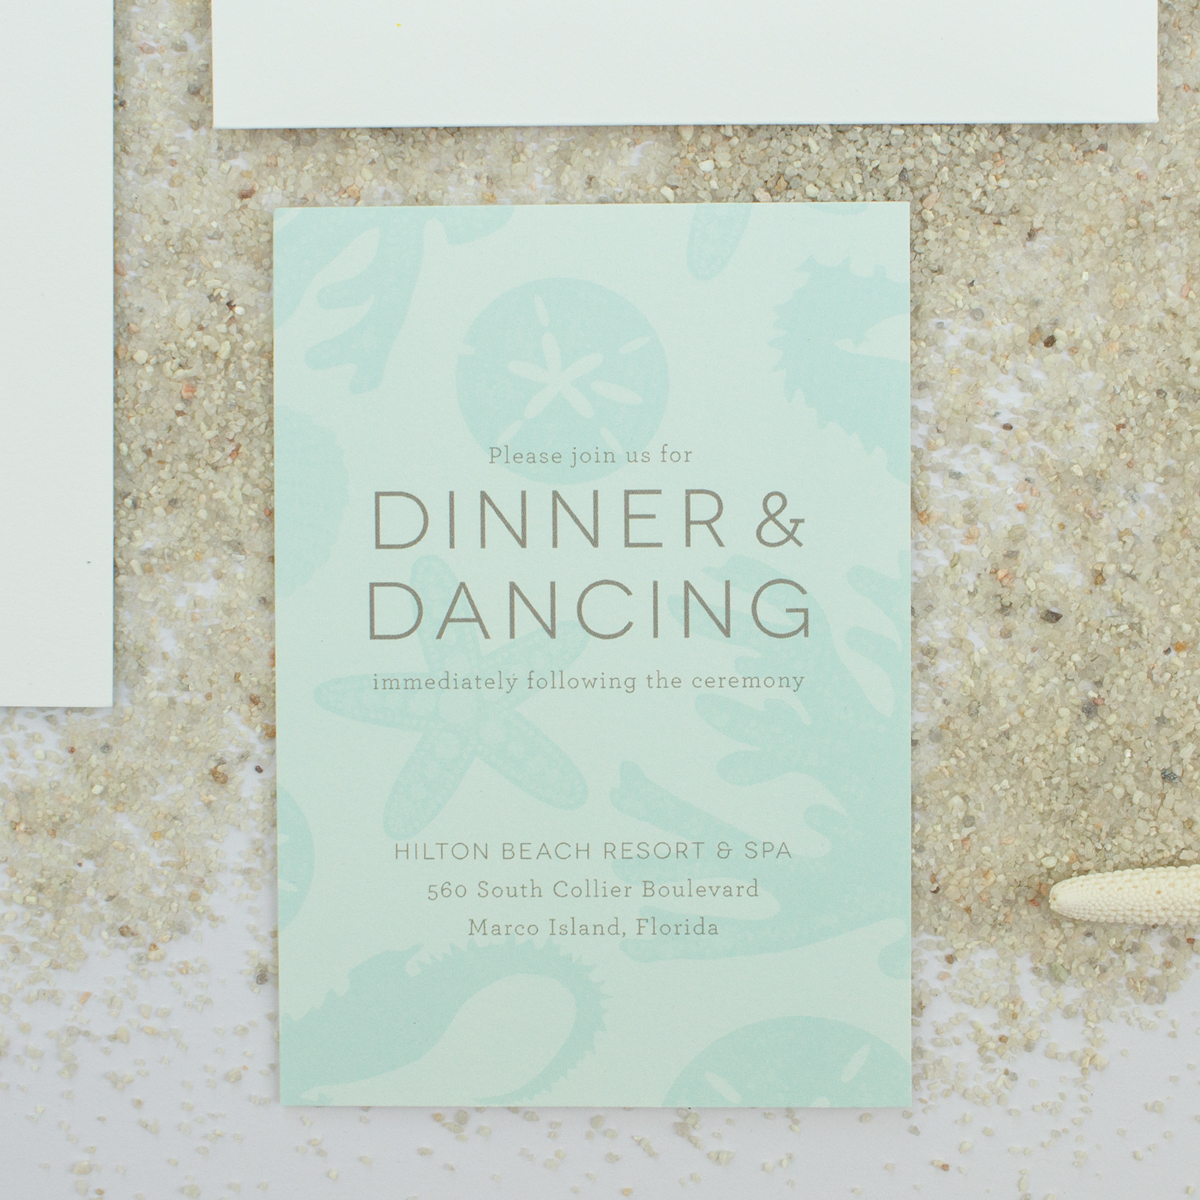 dinner and dancing insert card